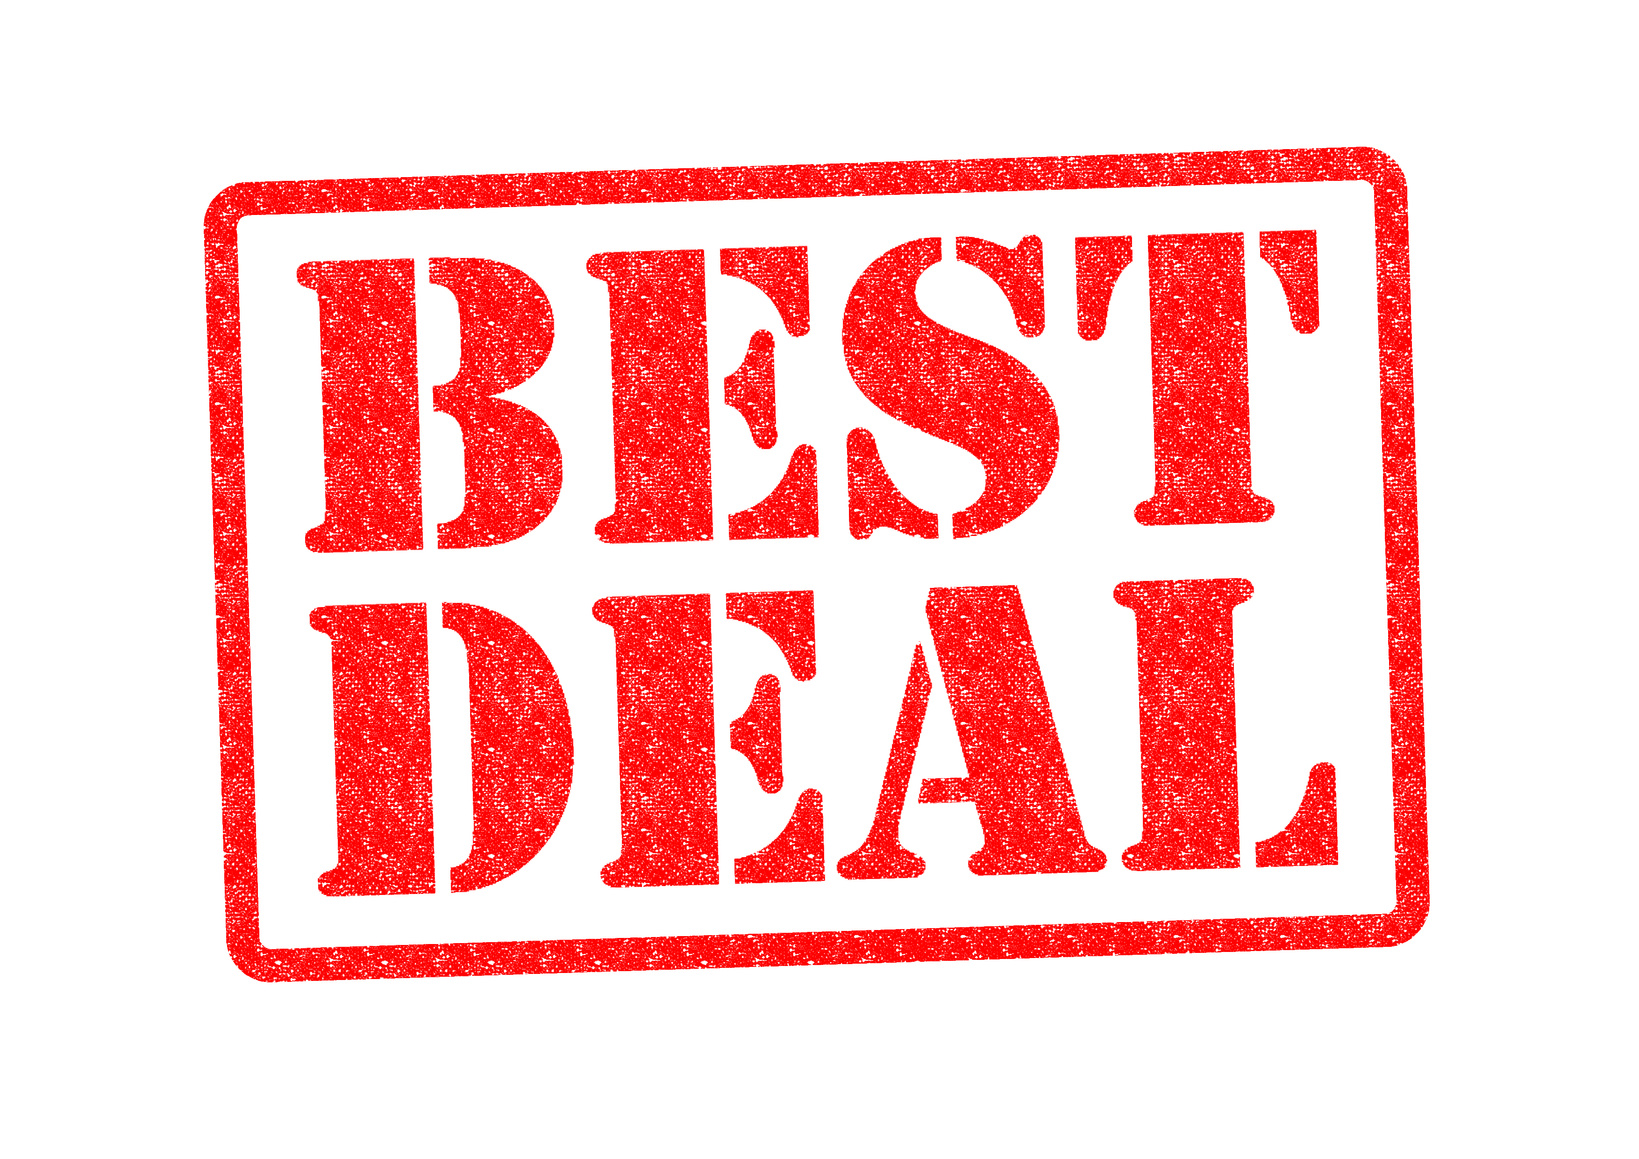 best deals bingo sites